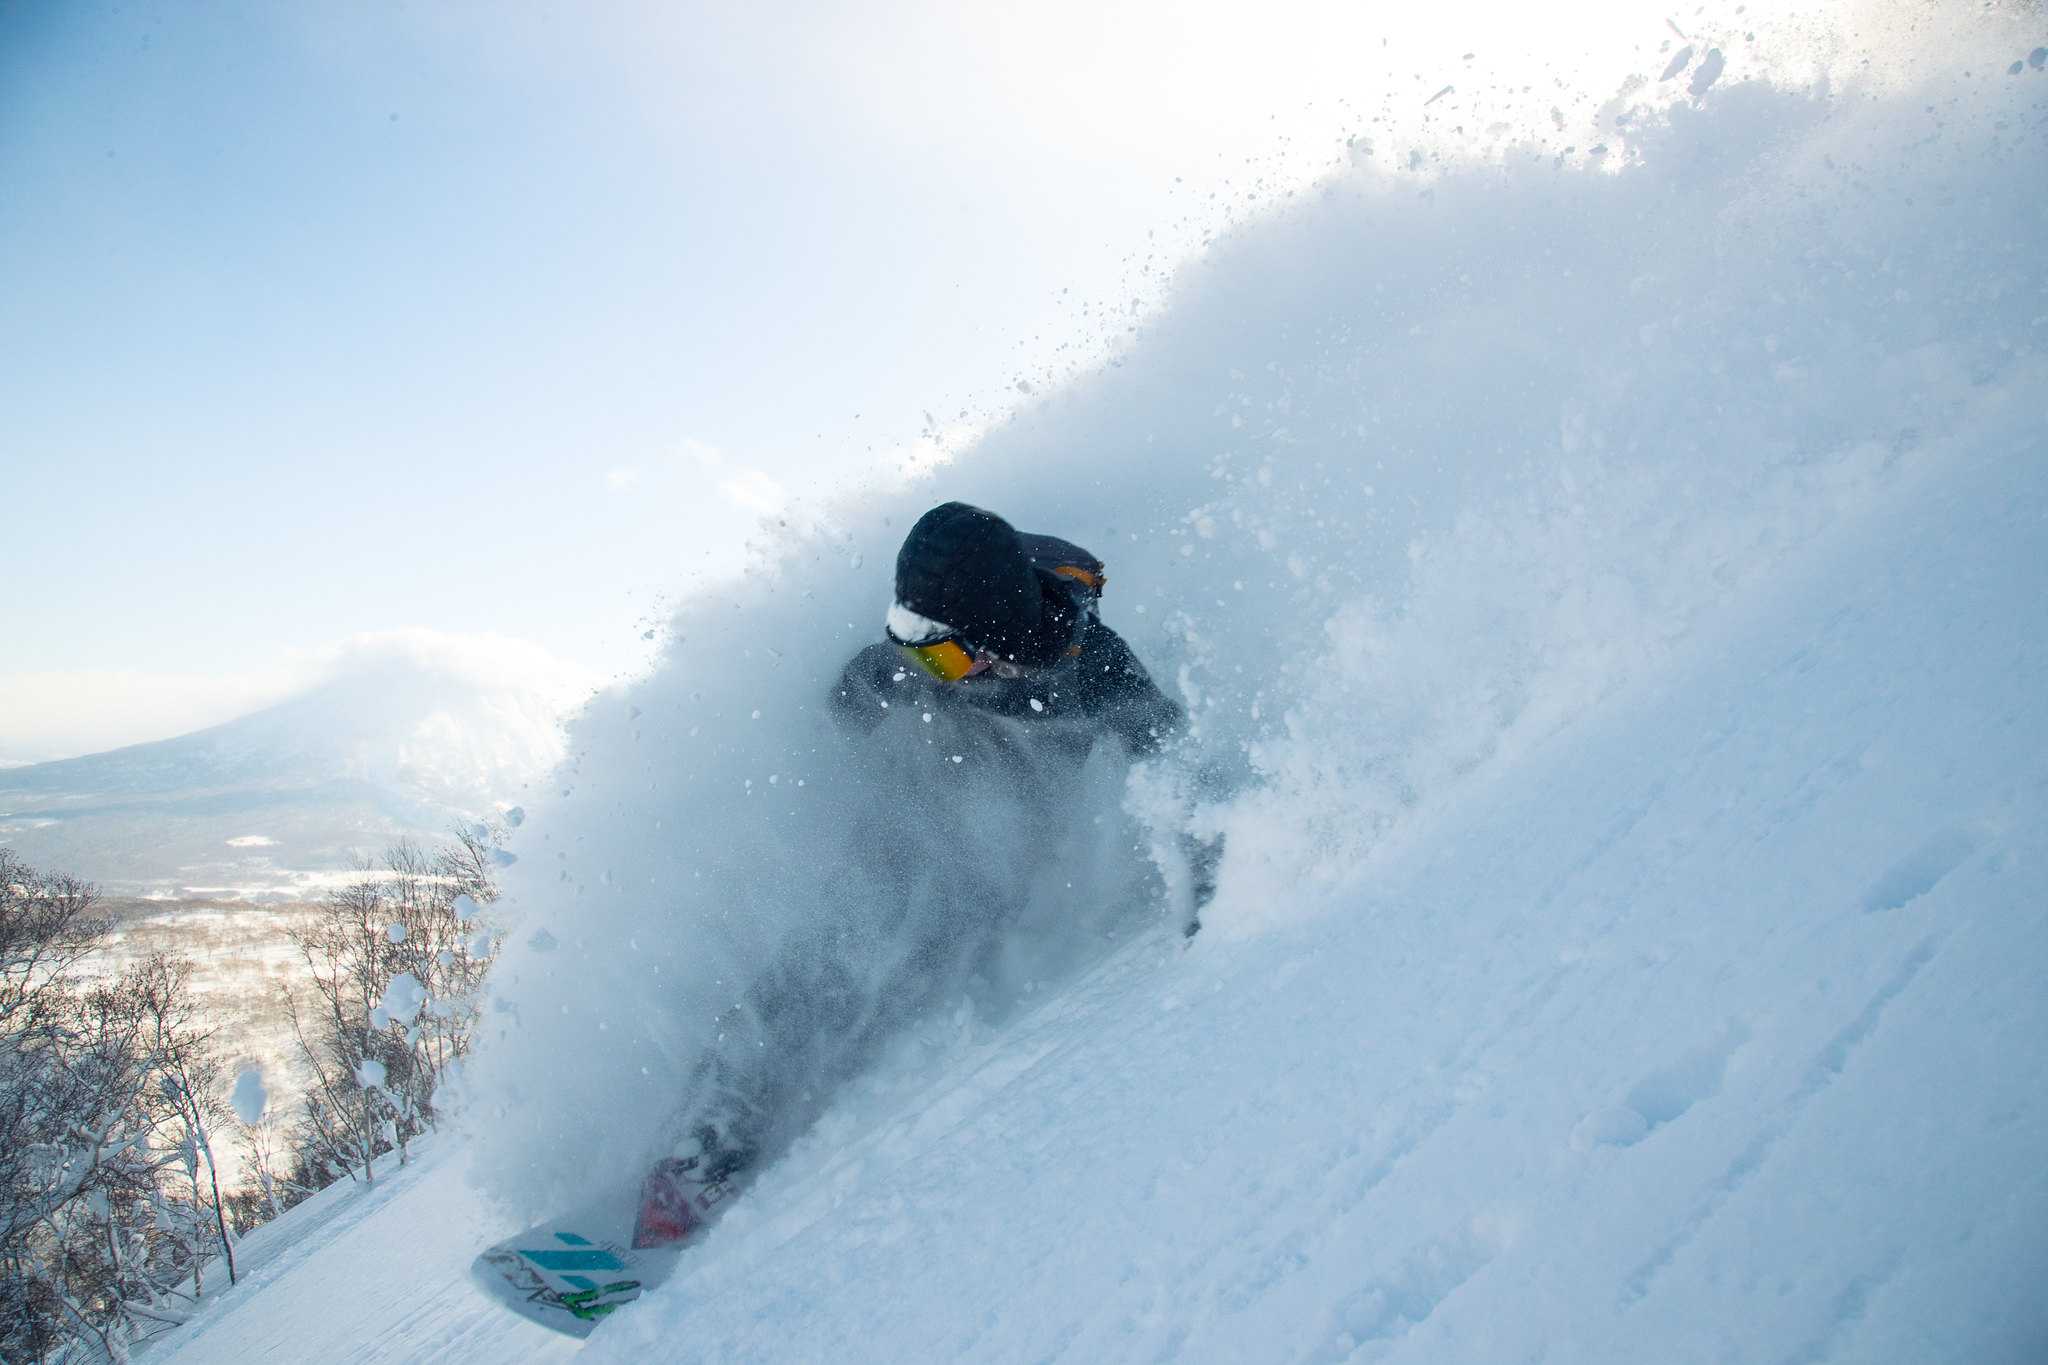 A snowboarder deep in powder in Niseko, Japan.